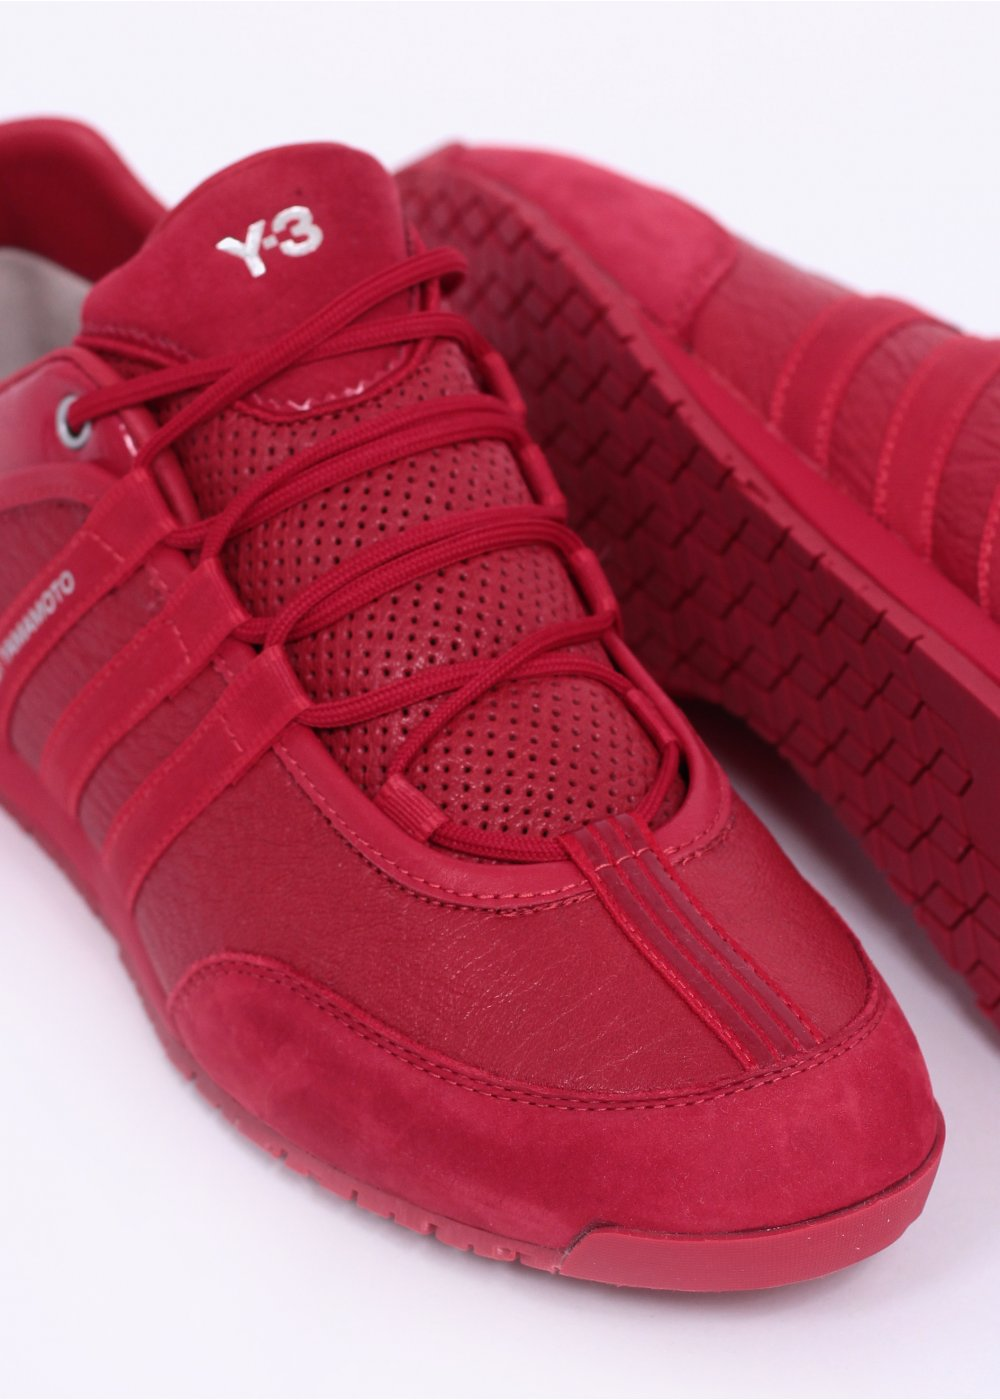 09c5993bce47f ... Knit Source · adidas Y3 Boxing Trainers Red